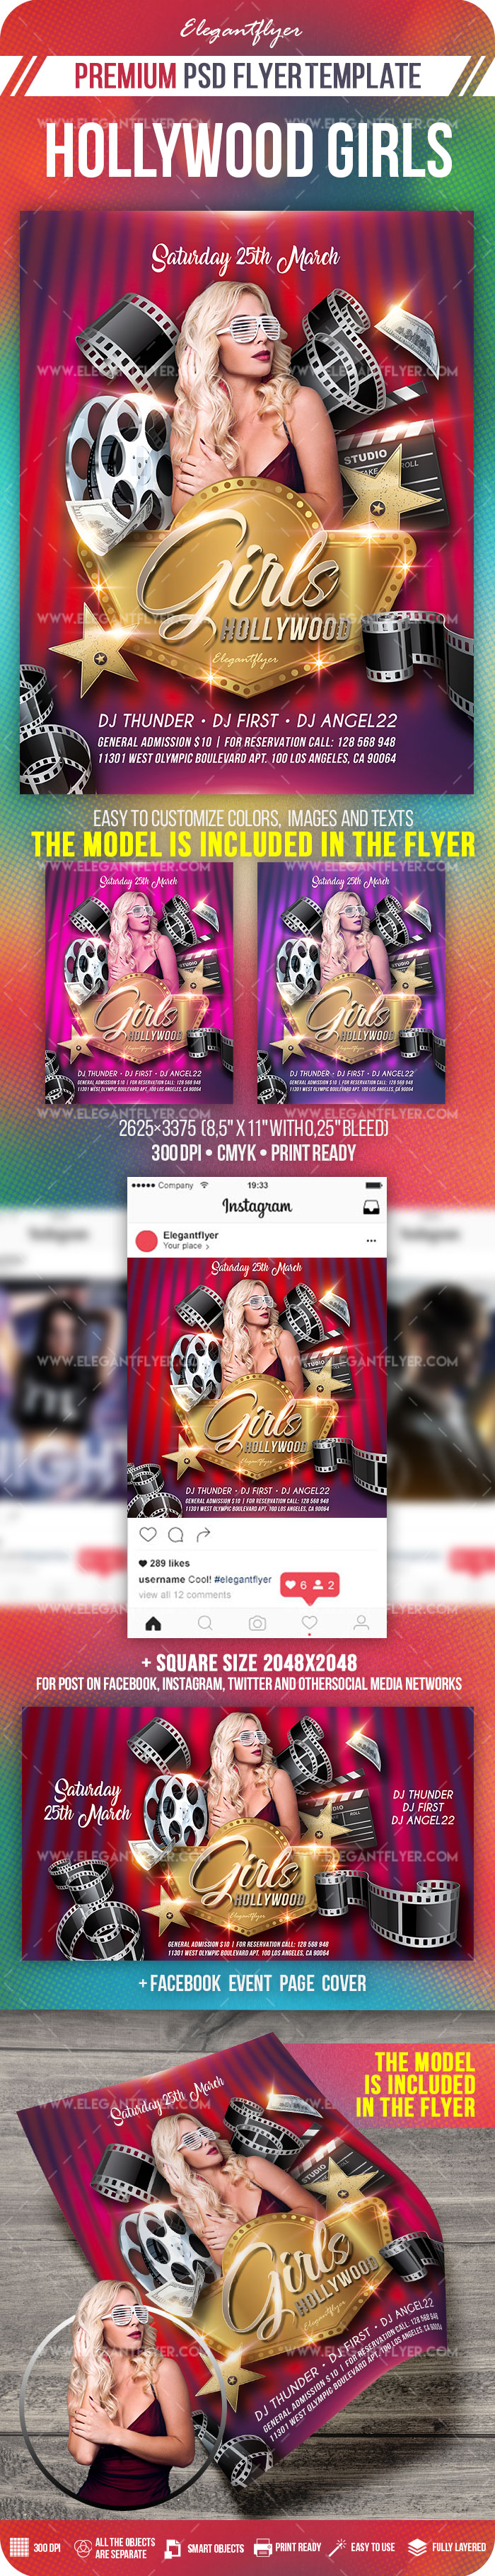 Hollywood Girls – PSD Flyer Template + Facebook Cover + Instagram Post